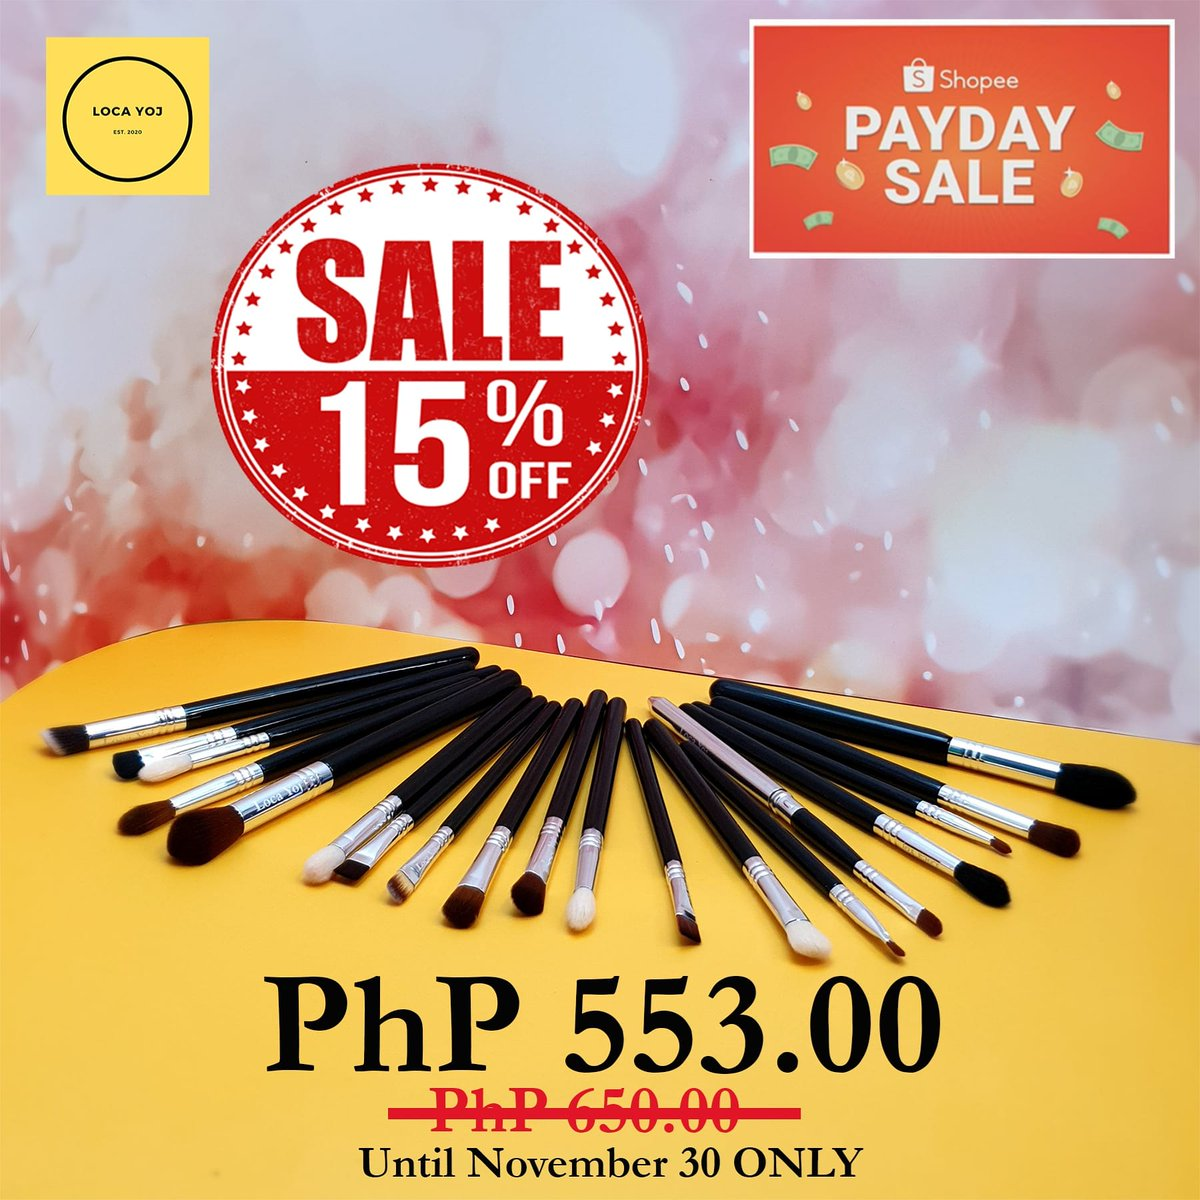 ‼️ HURRY AND ADD TO CART NOW‼️ Until November 30, 2020 ONLY  Shopee Store:  📦 COD Available  #wemaketoday #shopeefinds #shopeeseller #shopeeph #1212shopee #1212sale #wemaketoday #brushesph #brushph #eyemakeupbrushes #hellofrom #philippines #sharewithpride